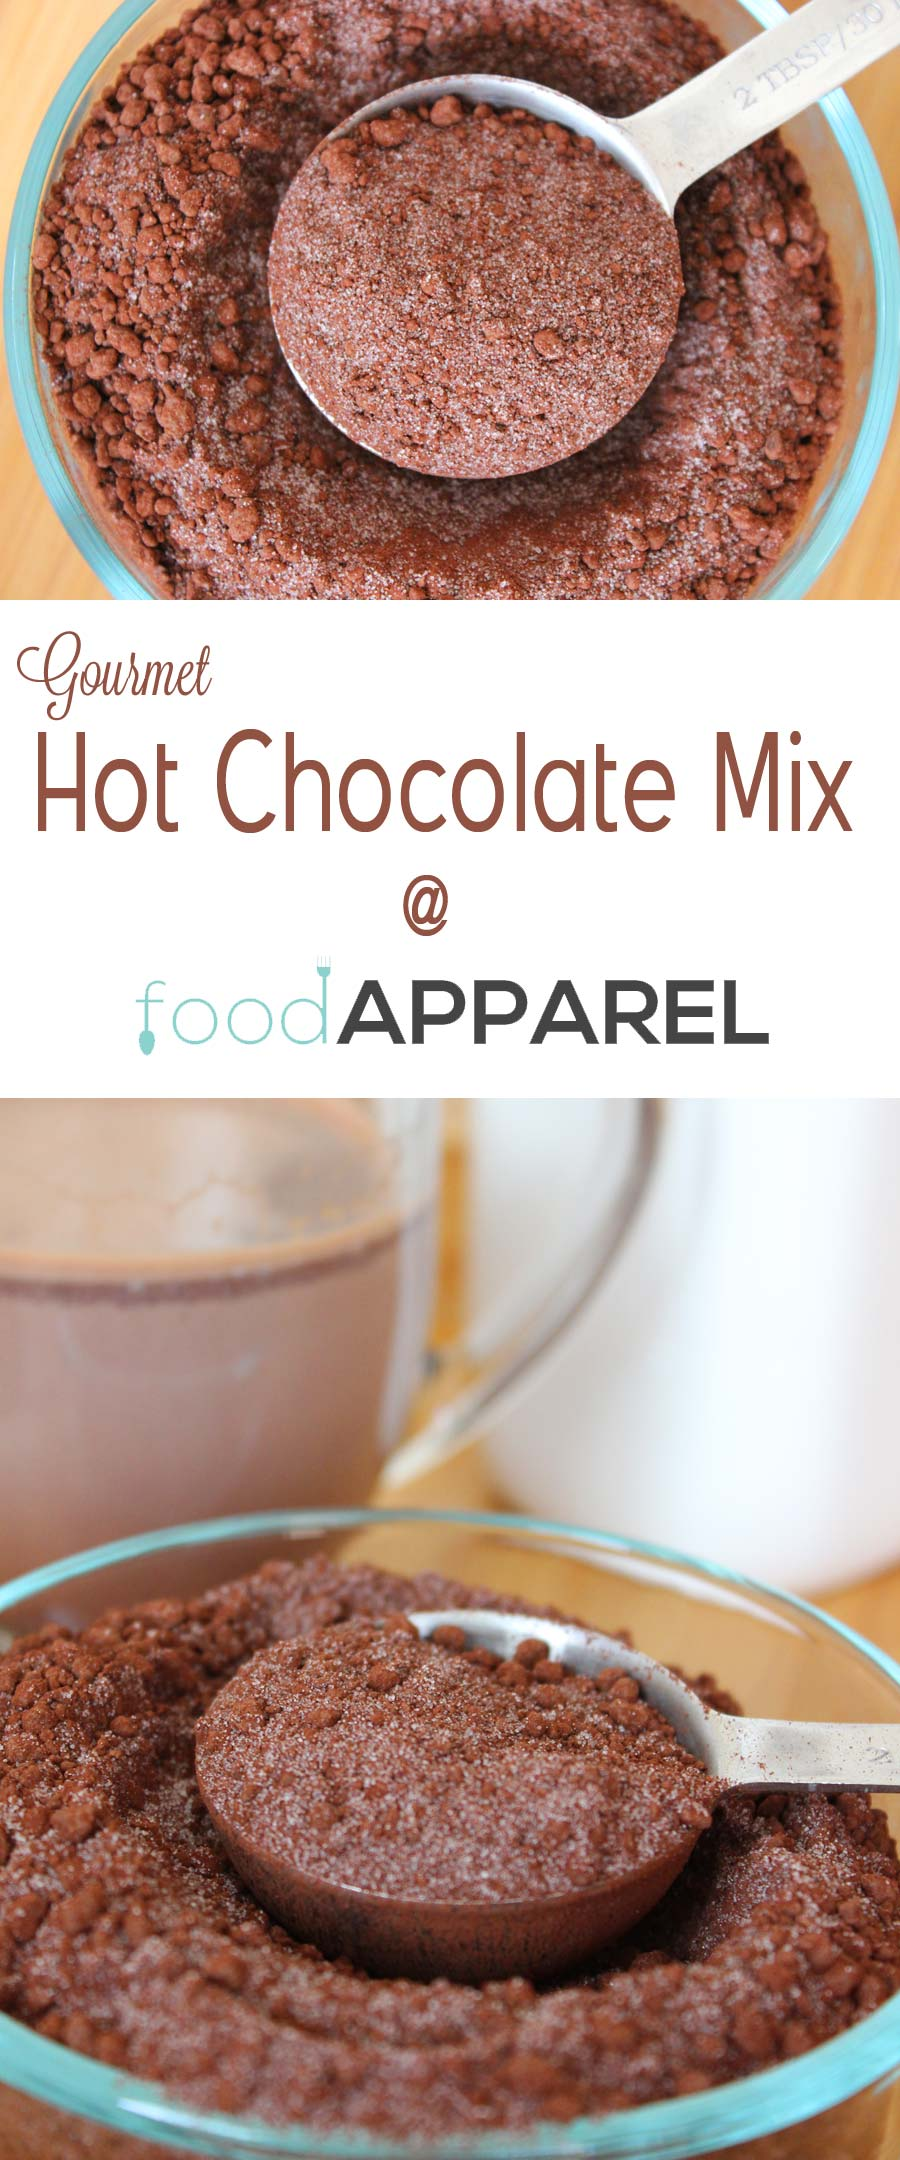 Gourmet Hot Chocolate Mix Recipe - for when you are tight on time, but still want something fabulous tasting! @foodapparel